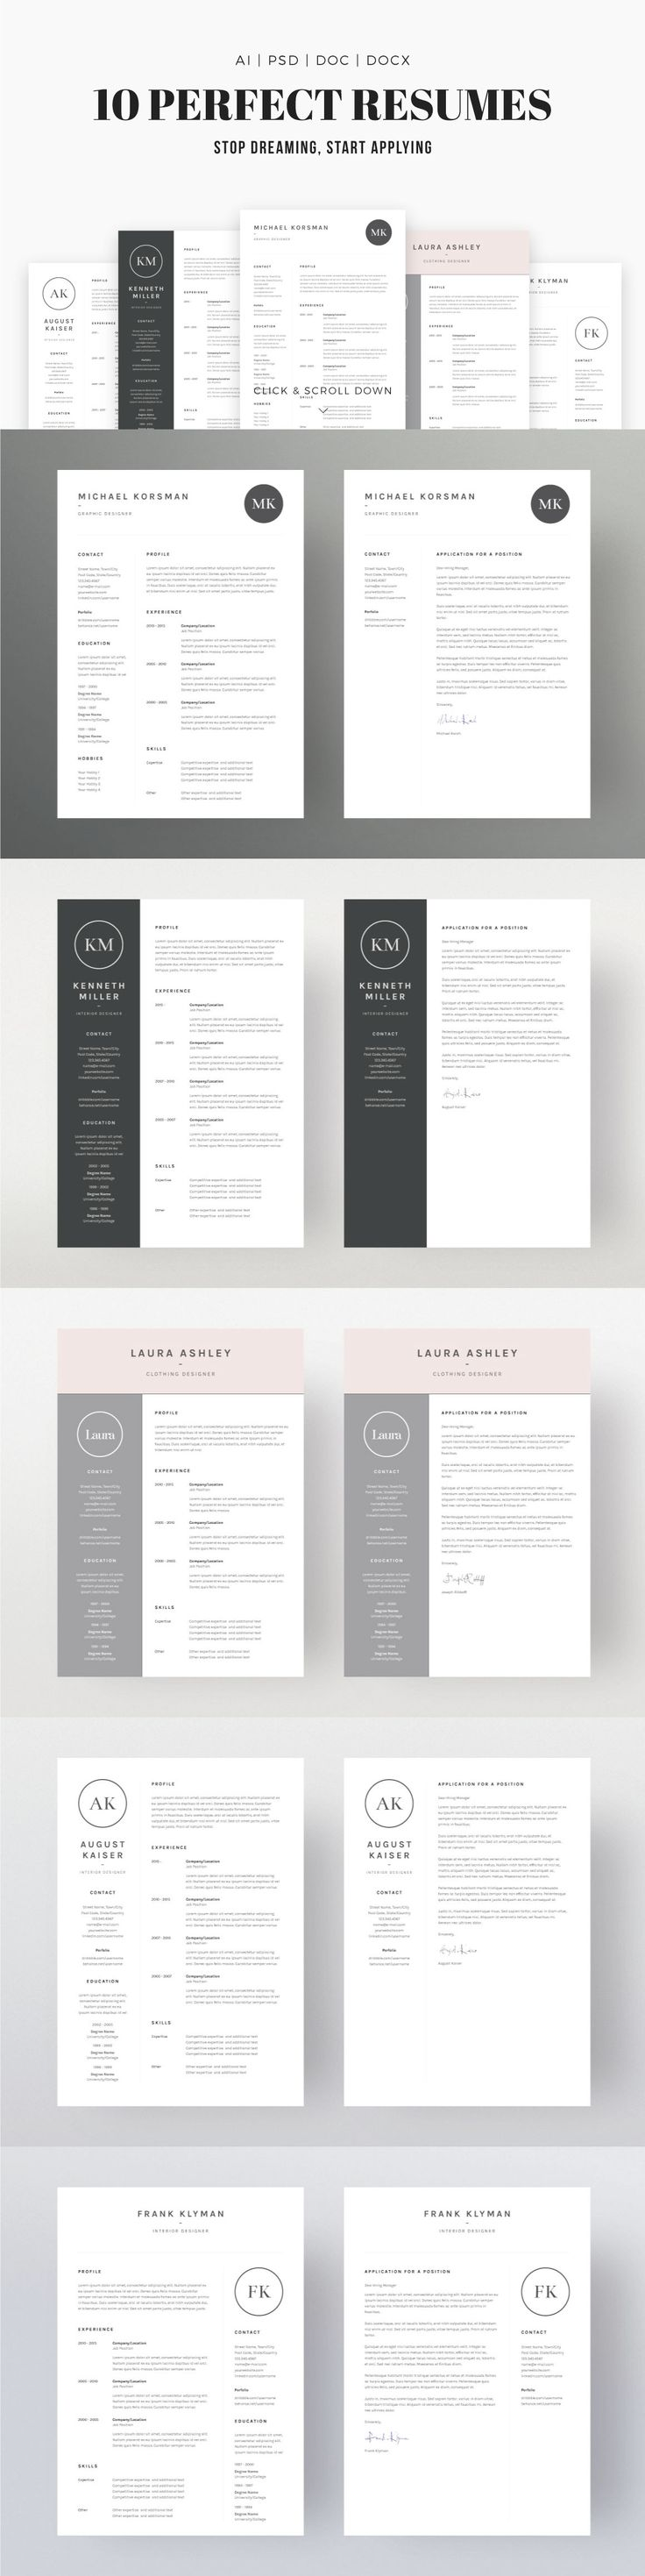 job seekers dream bundle professional downloadable resume template designs